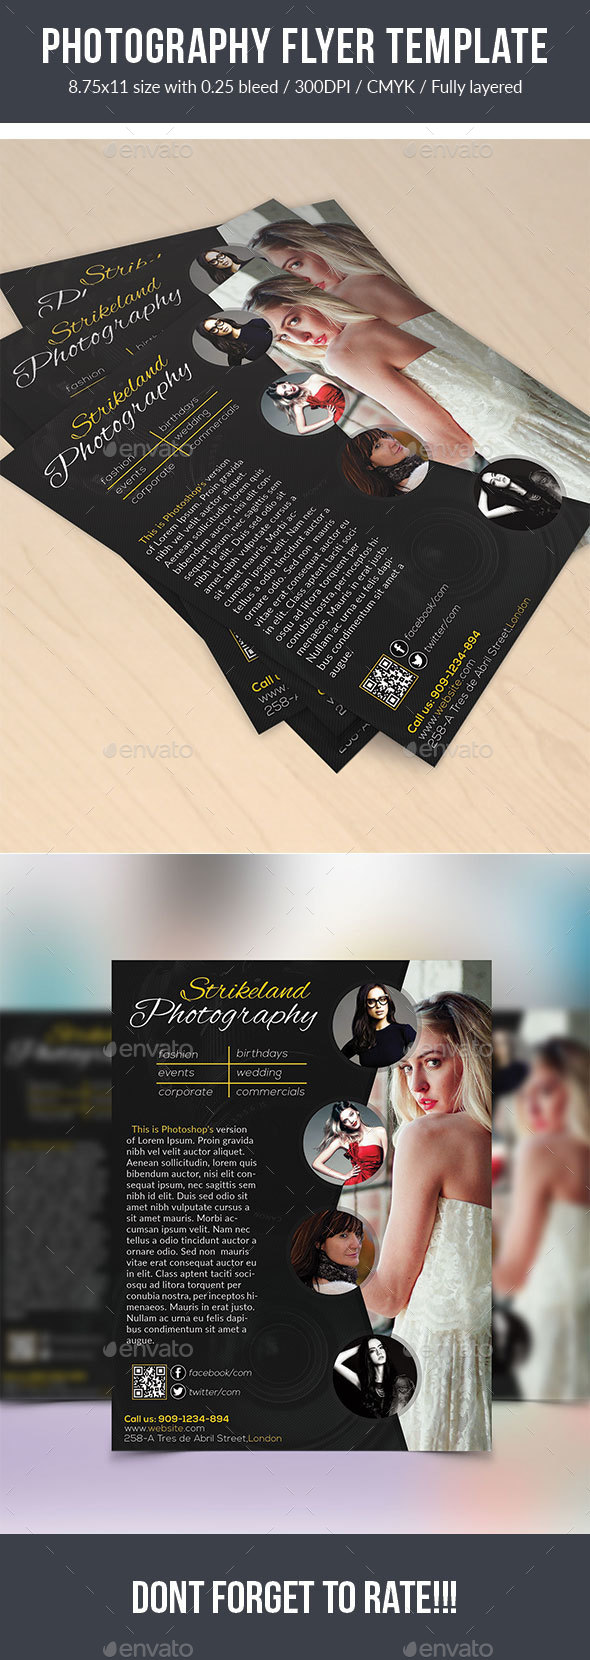 Photography Flyer Template - Flyers Print Templates